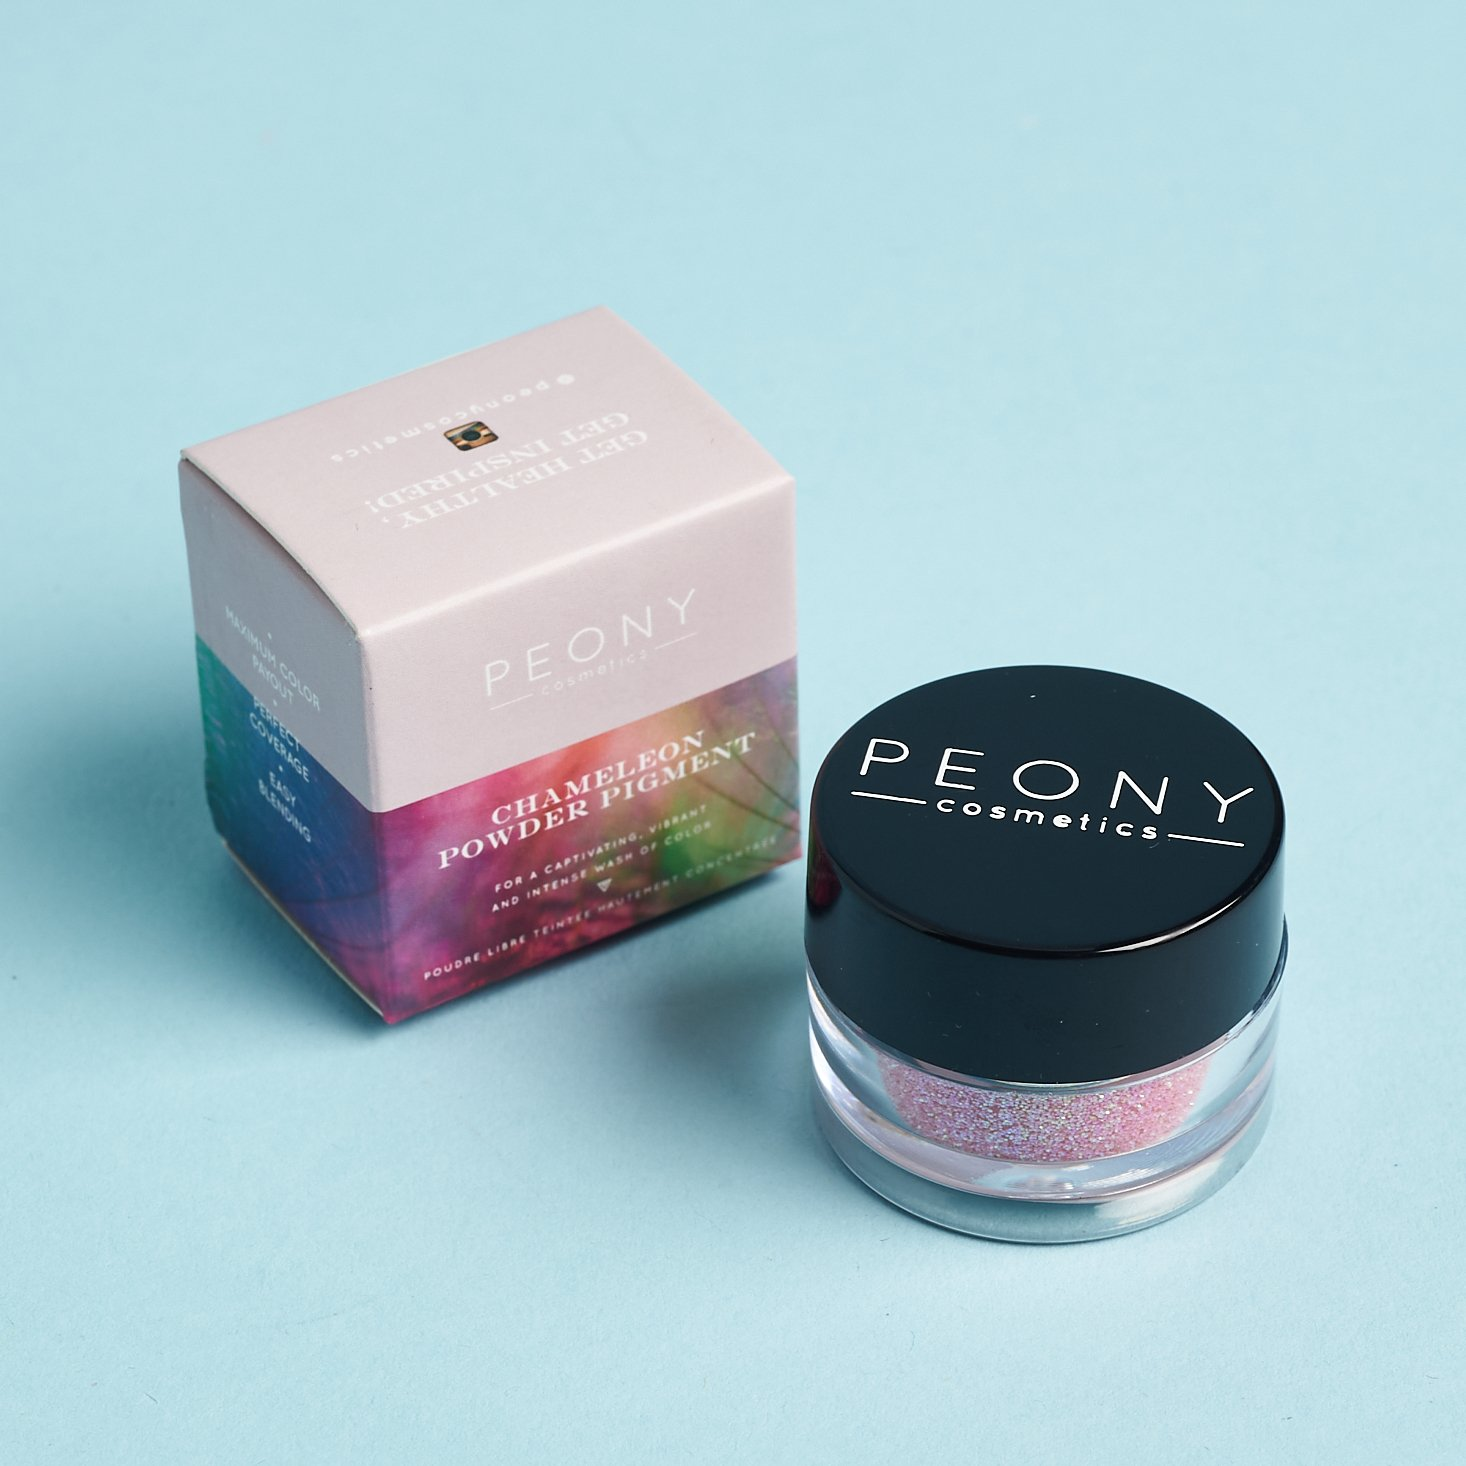 Peony Cosmetics Chameleon Powder Pigment Front for Nourish Beauty Box August 2020